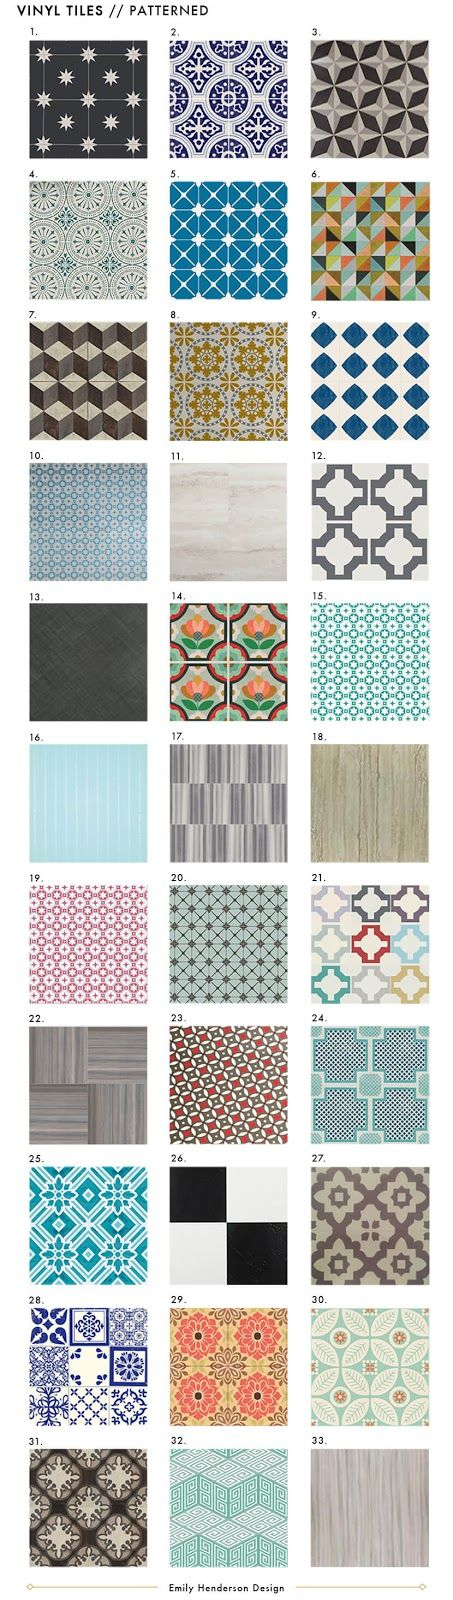 Moroccan Vinyl Flooring Find The Best Images Of Modern House Decor And Architecture At Https Zi Vinyl Flooring Uk Vinyl Flooring Kitchen Retro Vinyl Flooring